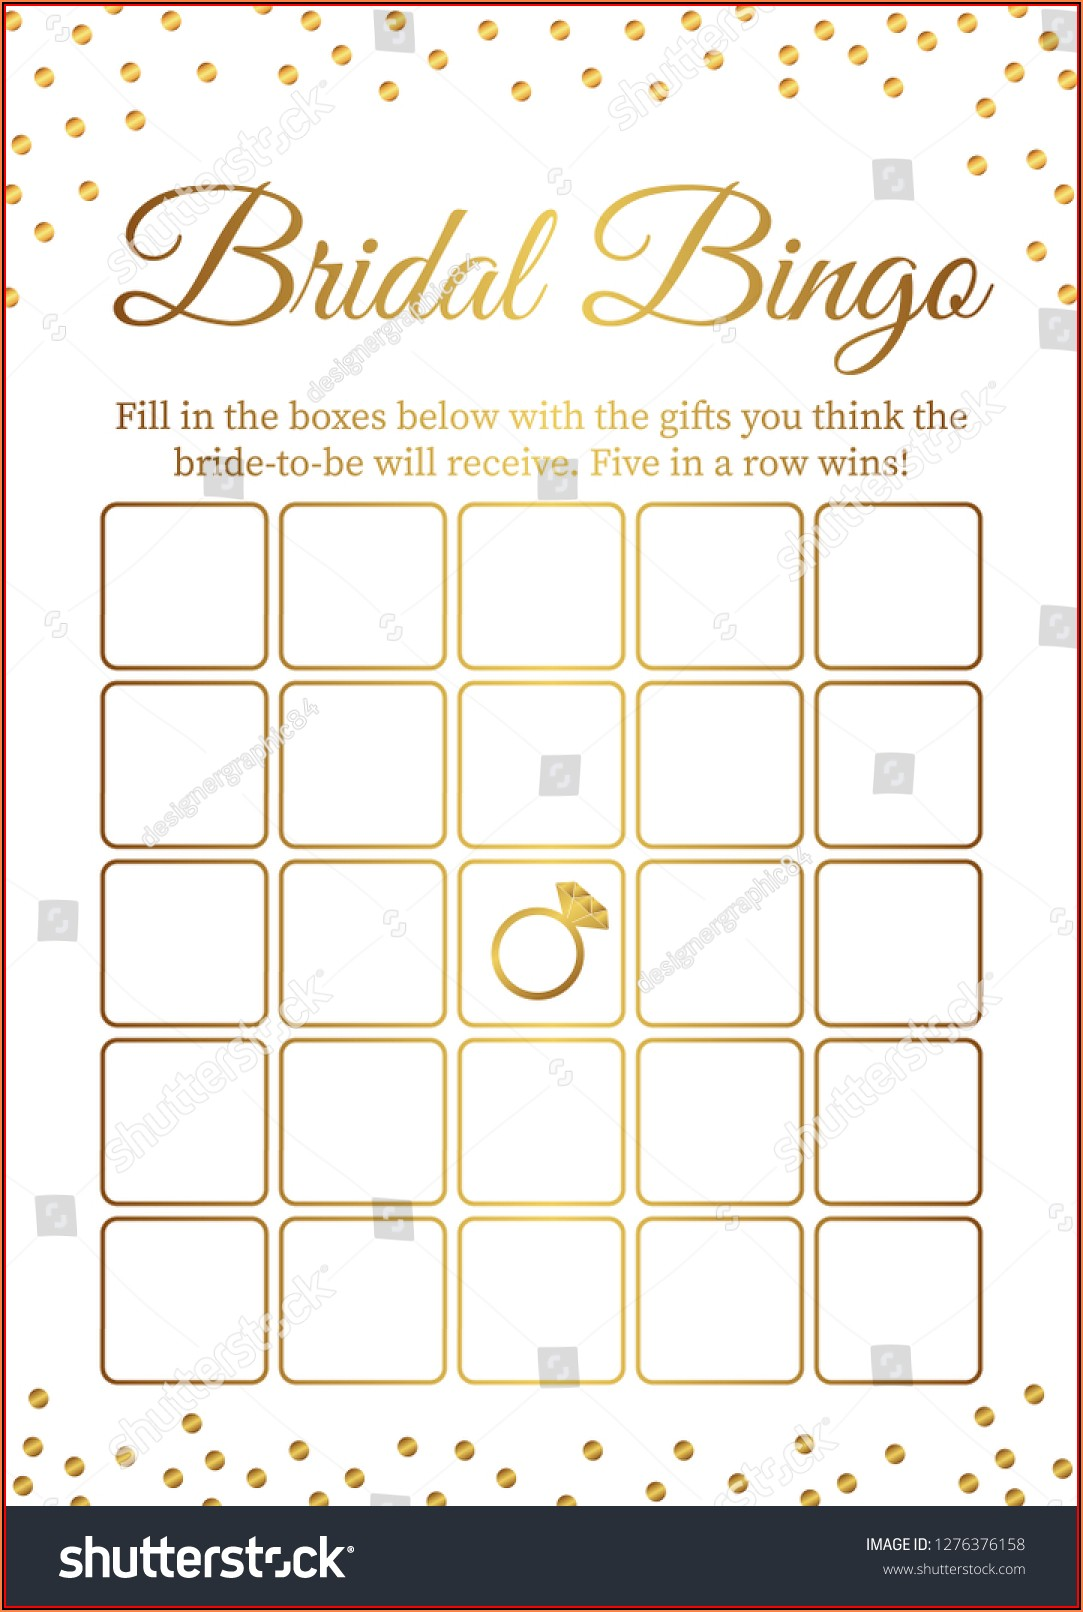 Bridal Shower Bingo Template Free